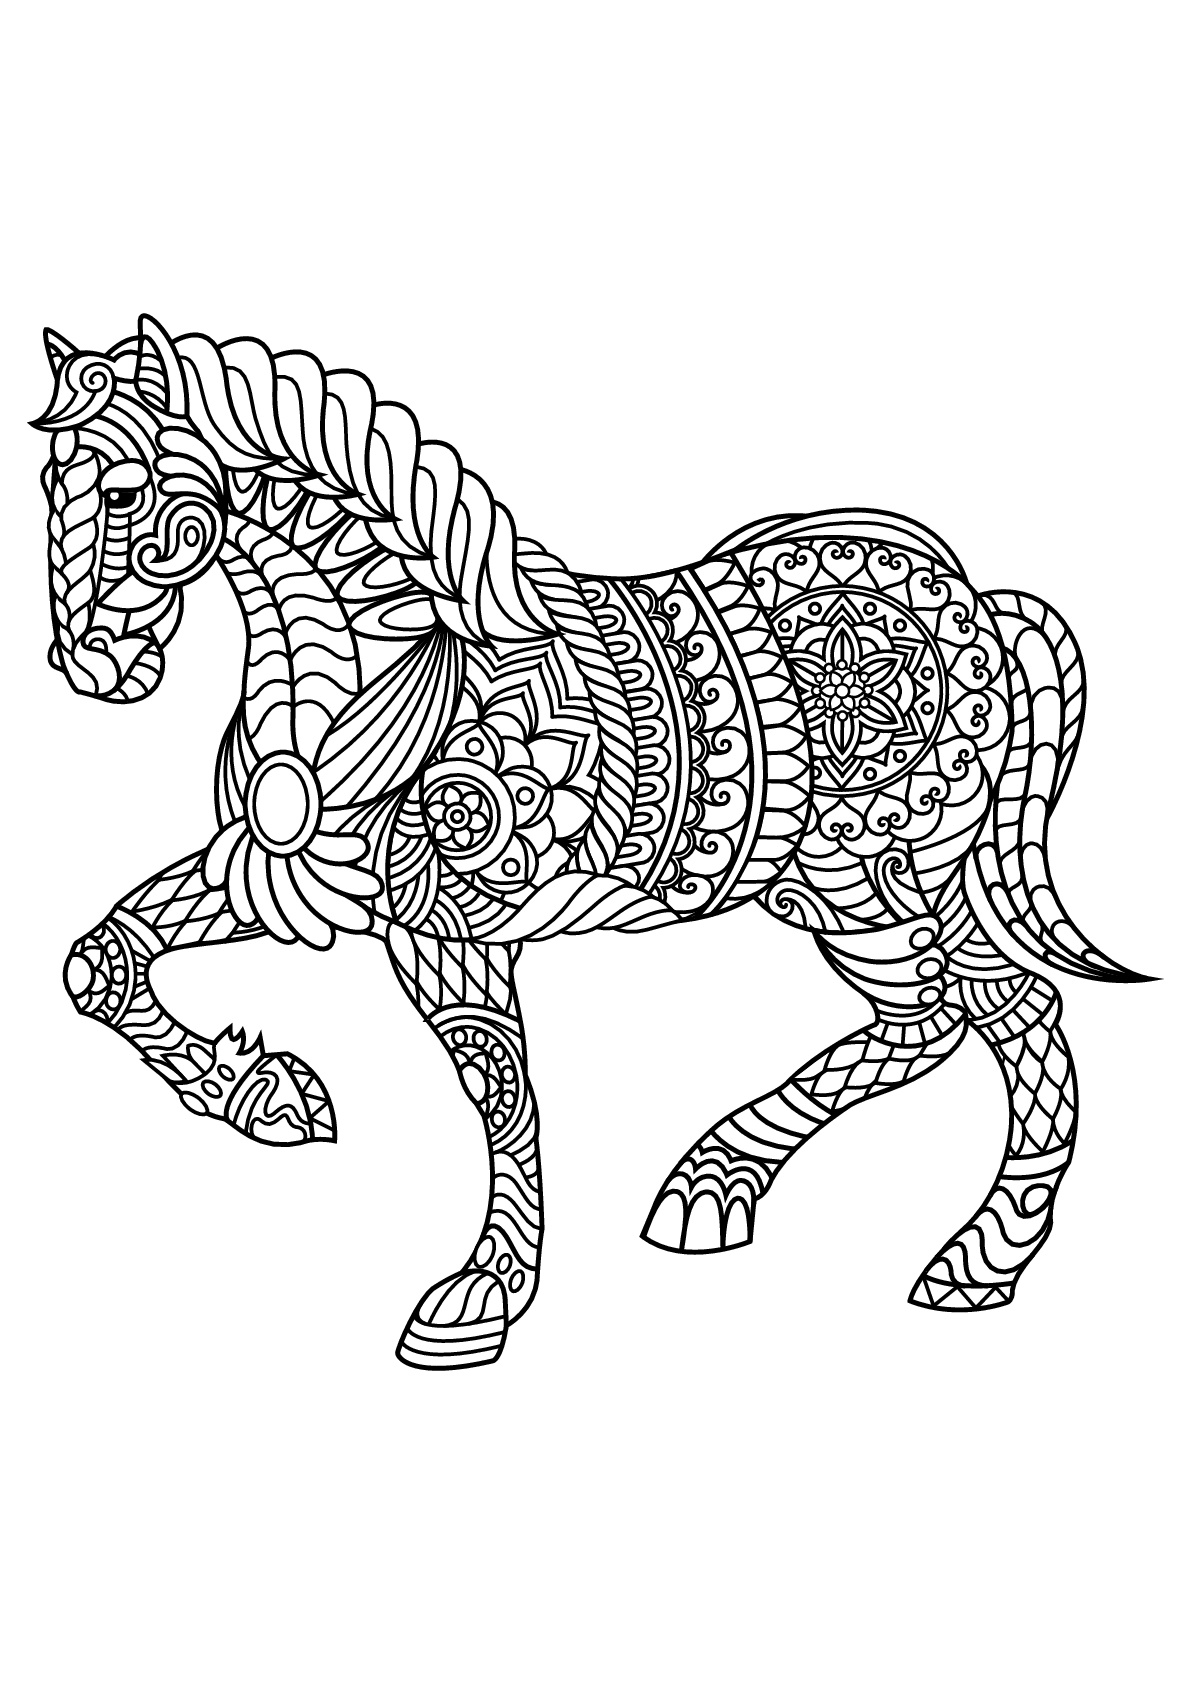 beautiful horse coloring pages carousel horse coloring pages for kids best place to color coloring beautiful pages horse